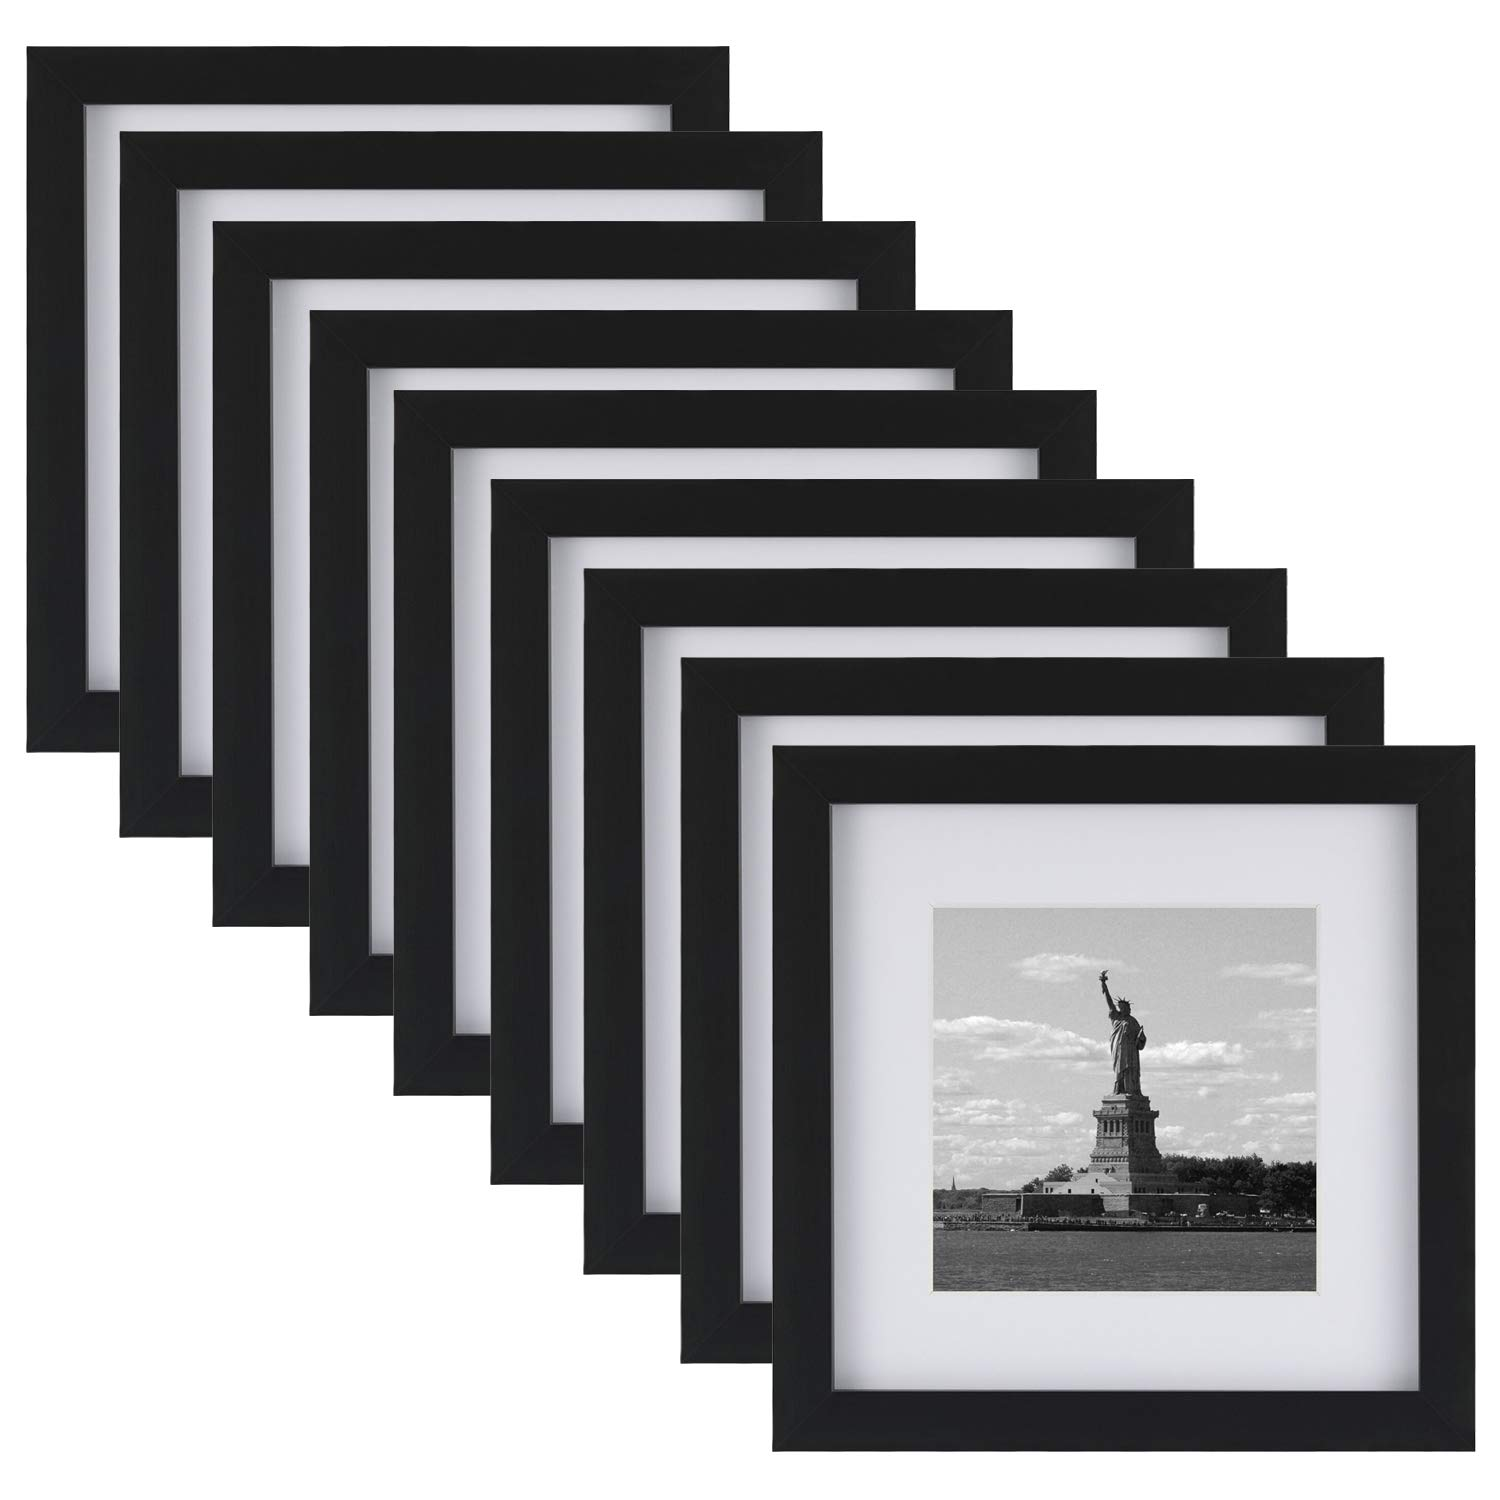 ONE WALL Tempered Glass 8x8 Picture Frame with Mats for 5x5, 4x4 Photo, Black Wood Frame for Wall and Tabletop - Mounting Hardware Included by ONE WALL